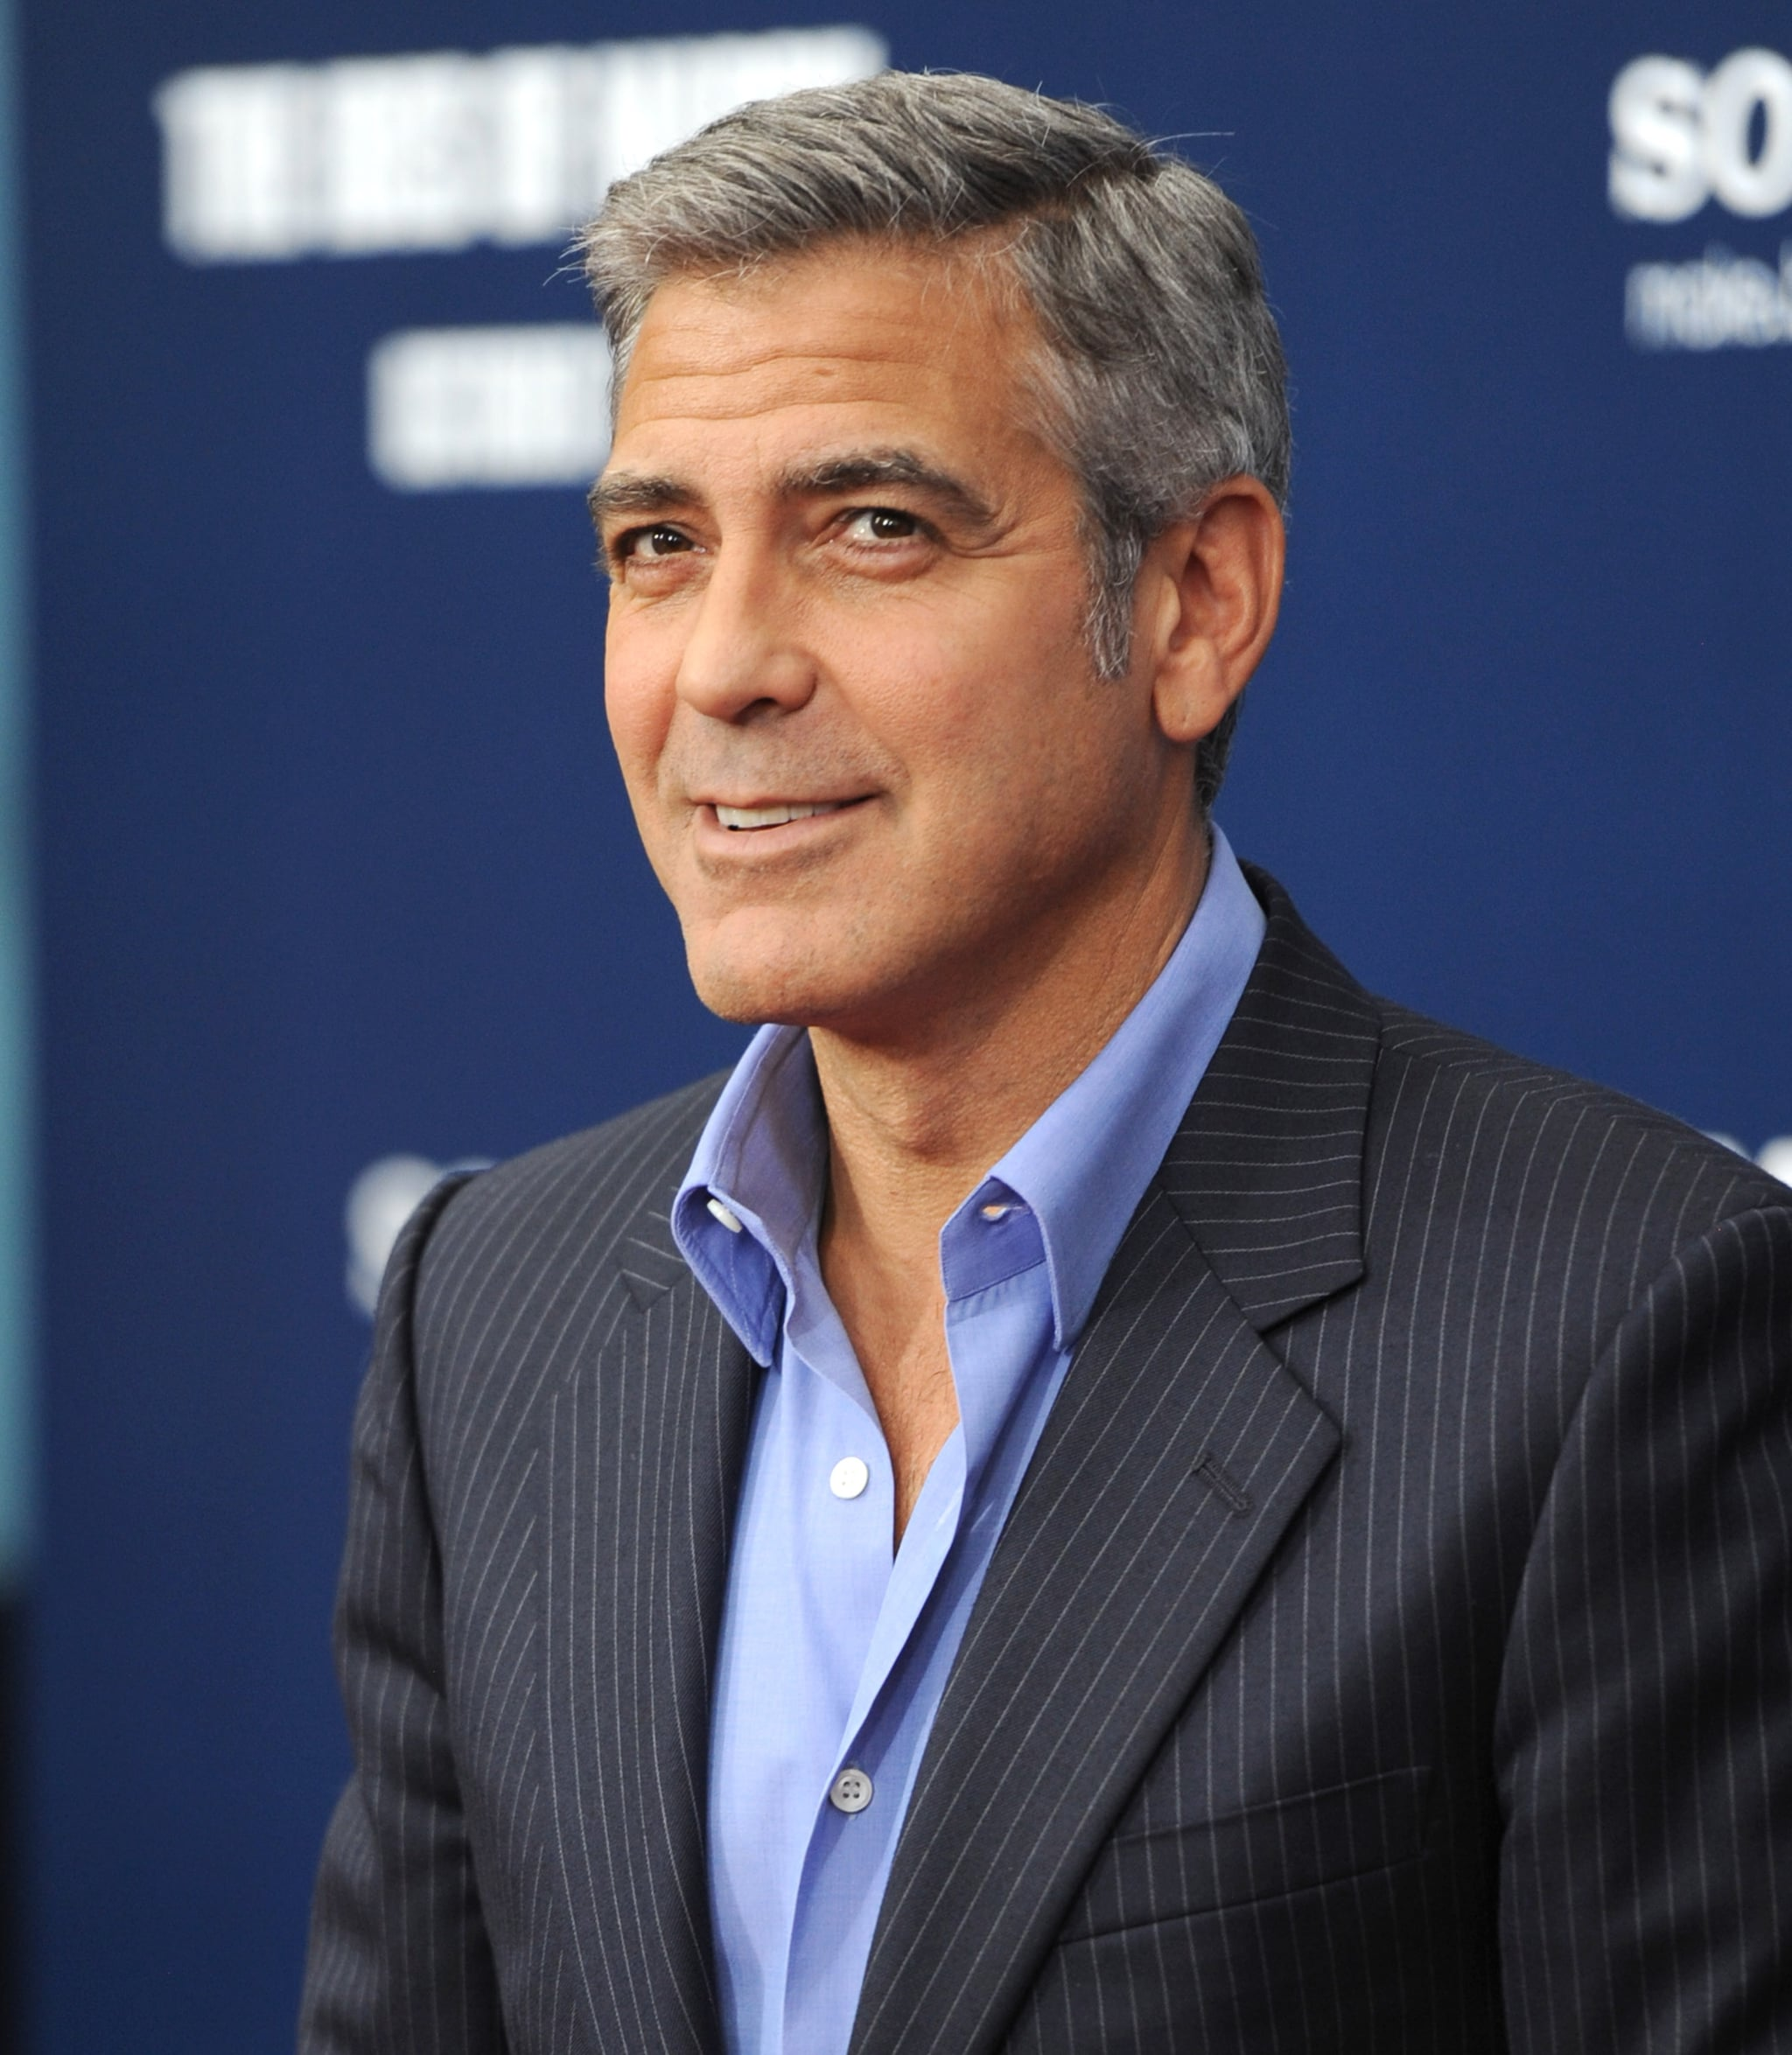 George Clooney answered press questions before the premiere of The Ides of March in NYC.